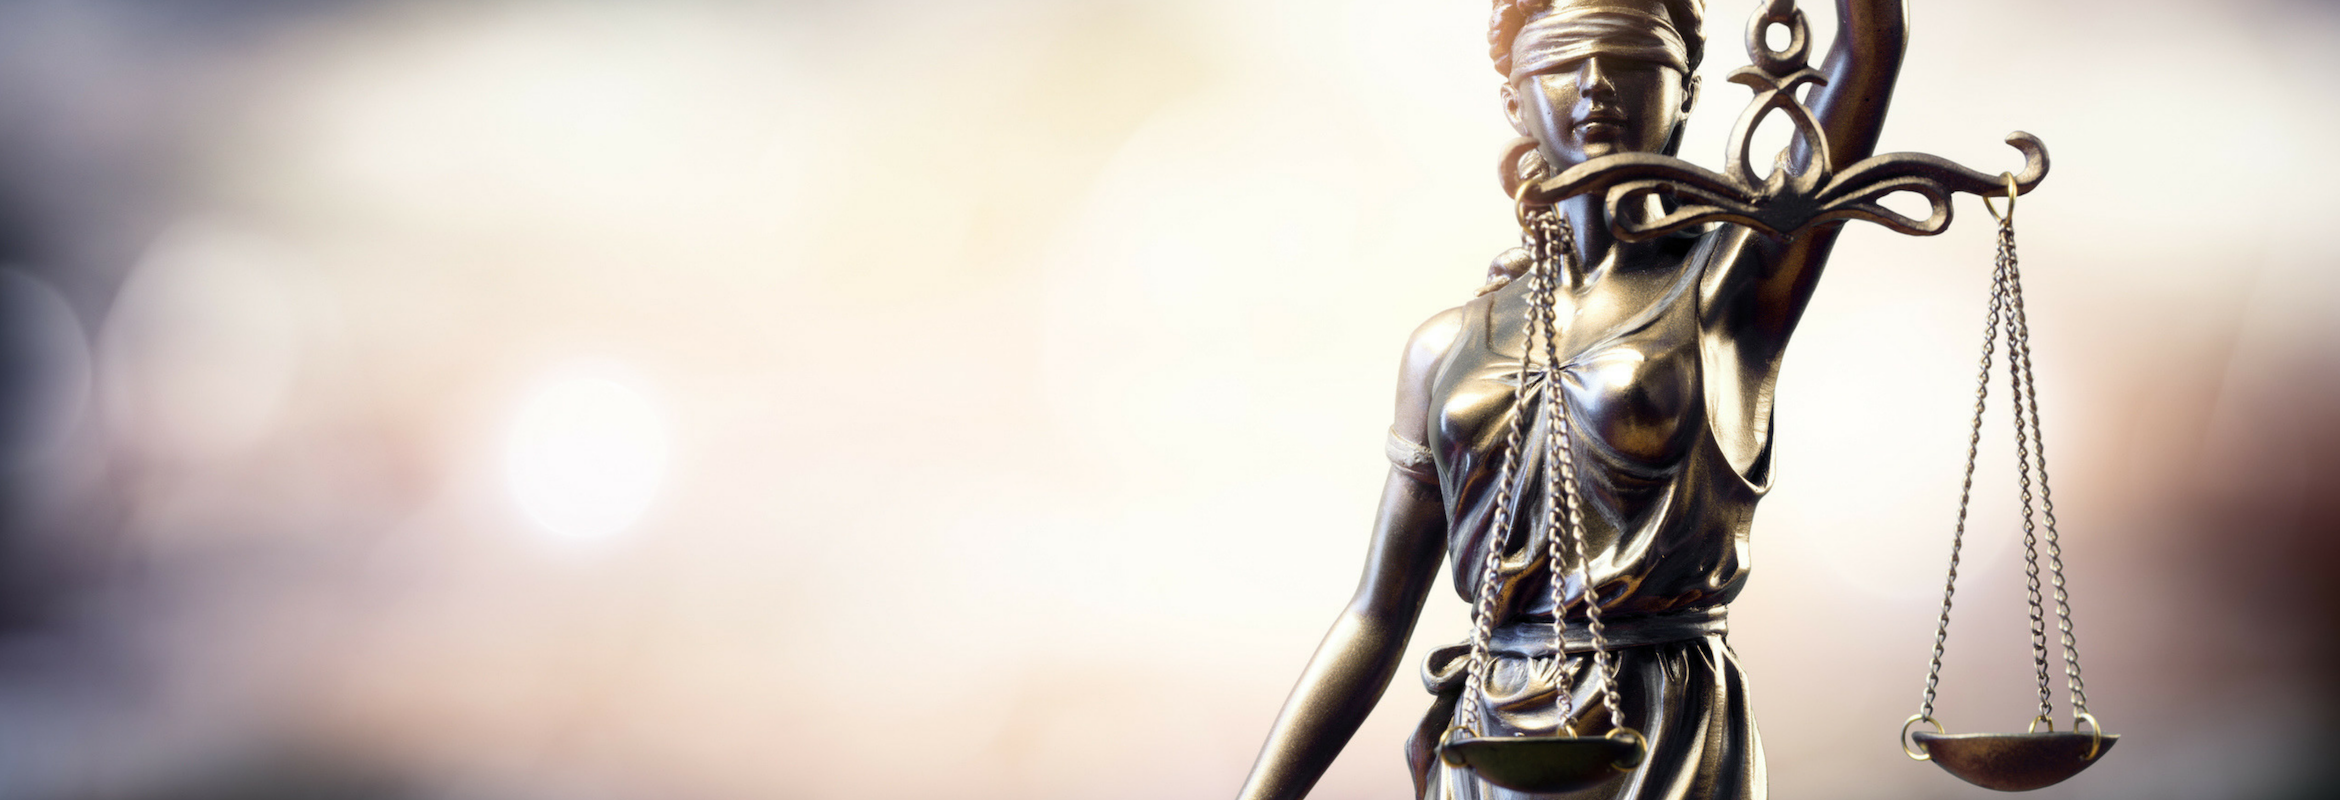 An image of lady justice